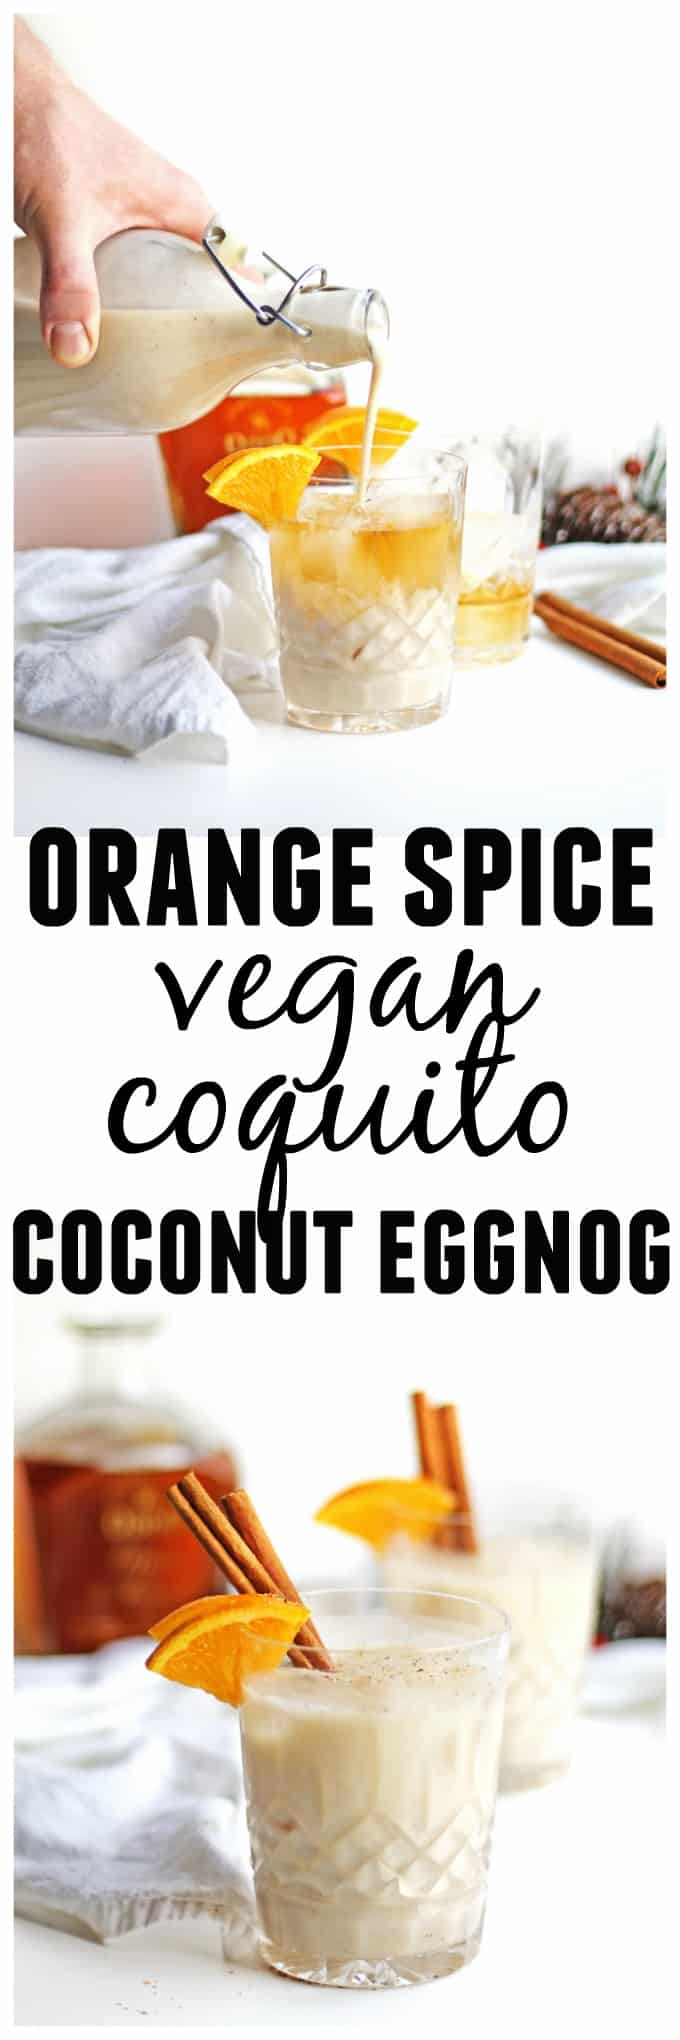 Orange spice vegan coquito recipe! Dairy free and egg free way to enjoy Puerto Rican eggnog. // Rhubarbarians // coconut eggnog / vegan eggnog / holiday drinks / christmas cocktail / holiday cocktail / #christmas #christmascocktail #holidaycocktail #eggnog #coquito #vegan